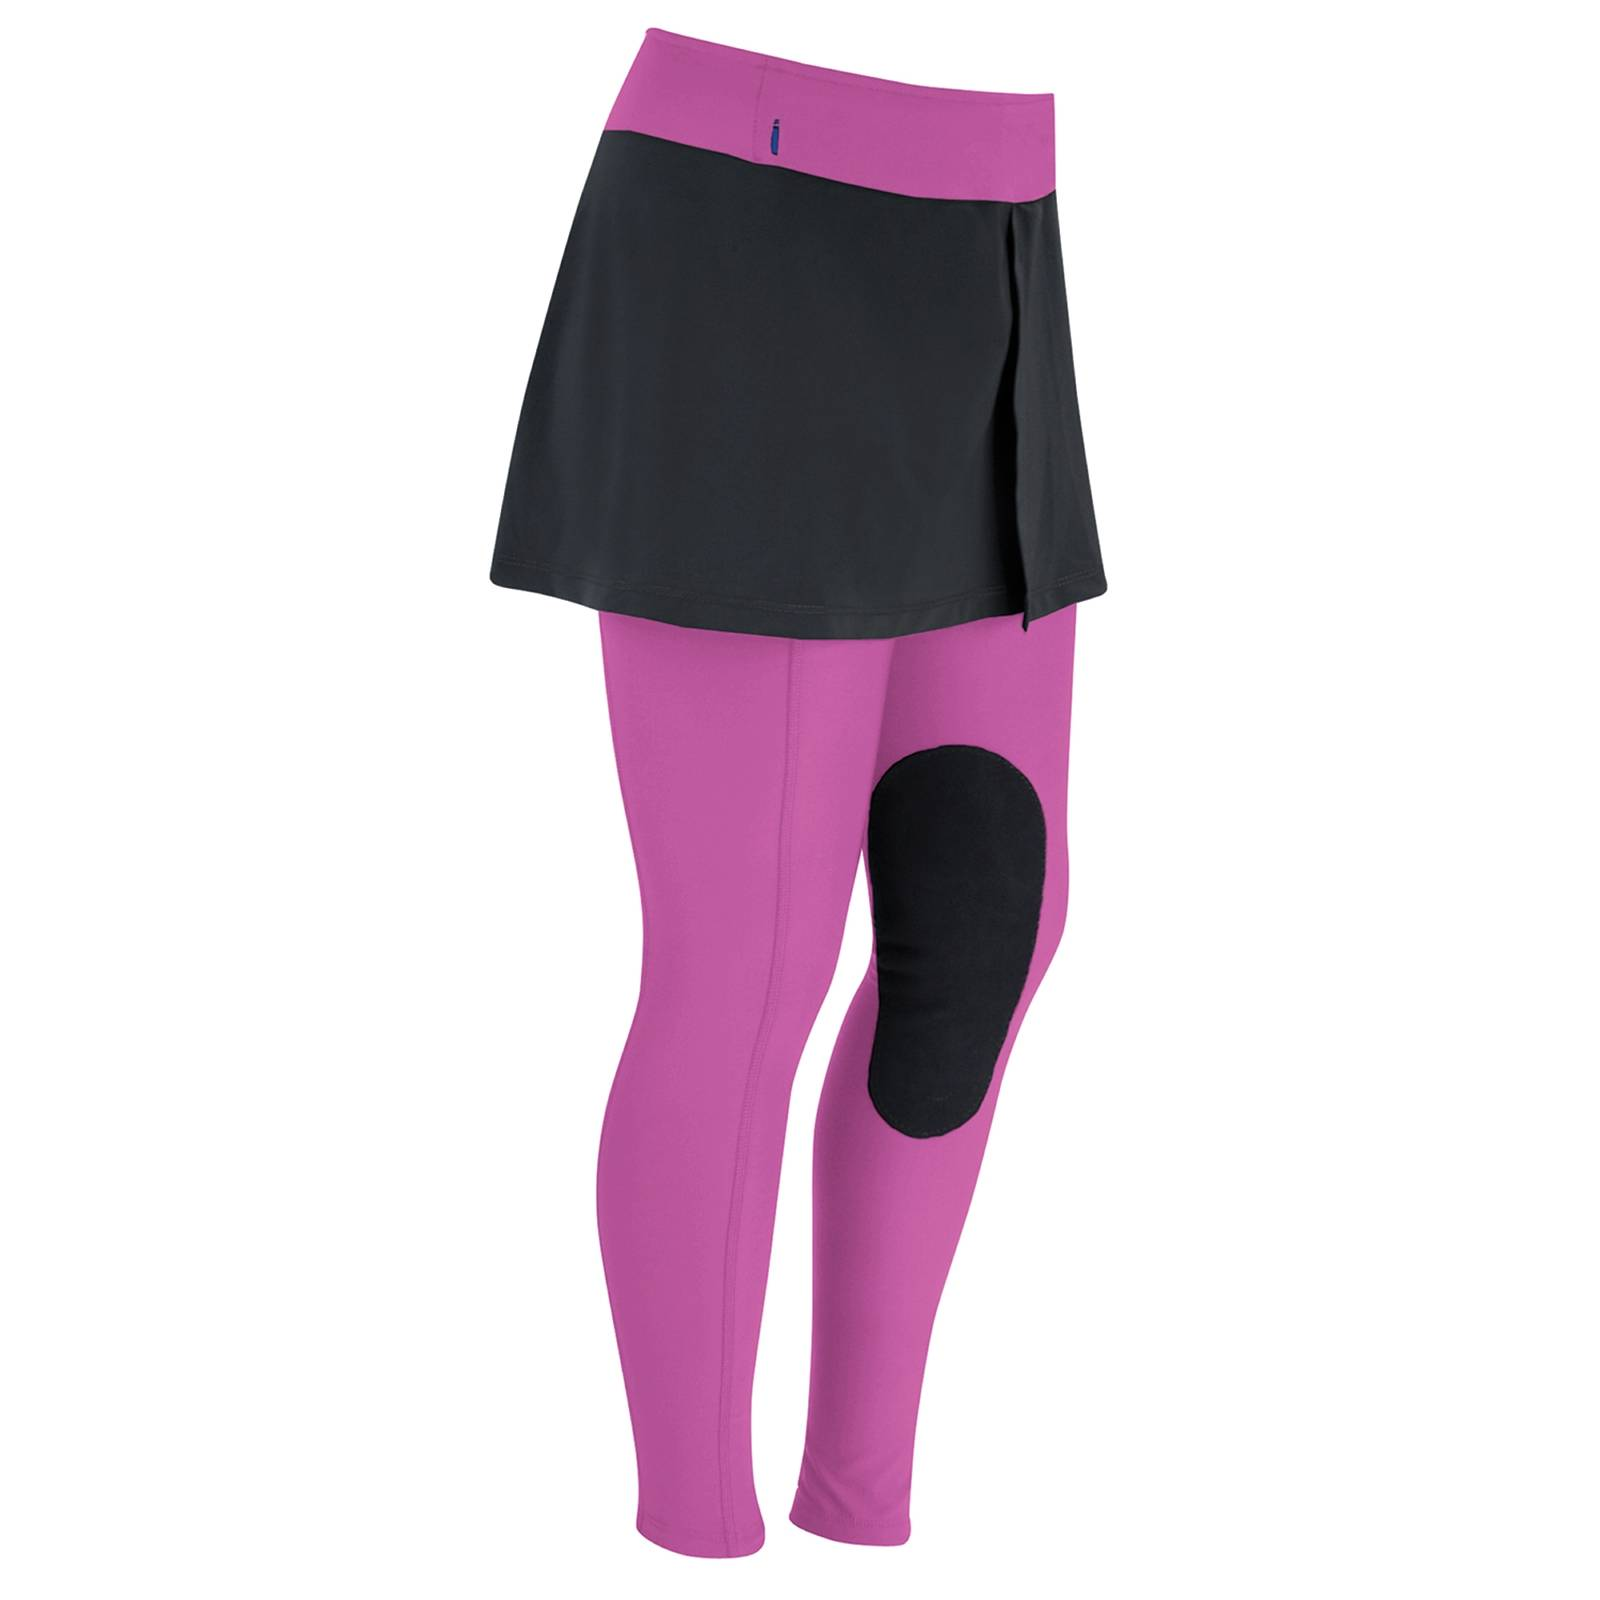 Outlet - Irideon Issential Mini Riding Tights - Kids, X-Large, Razzle Dazzle